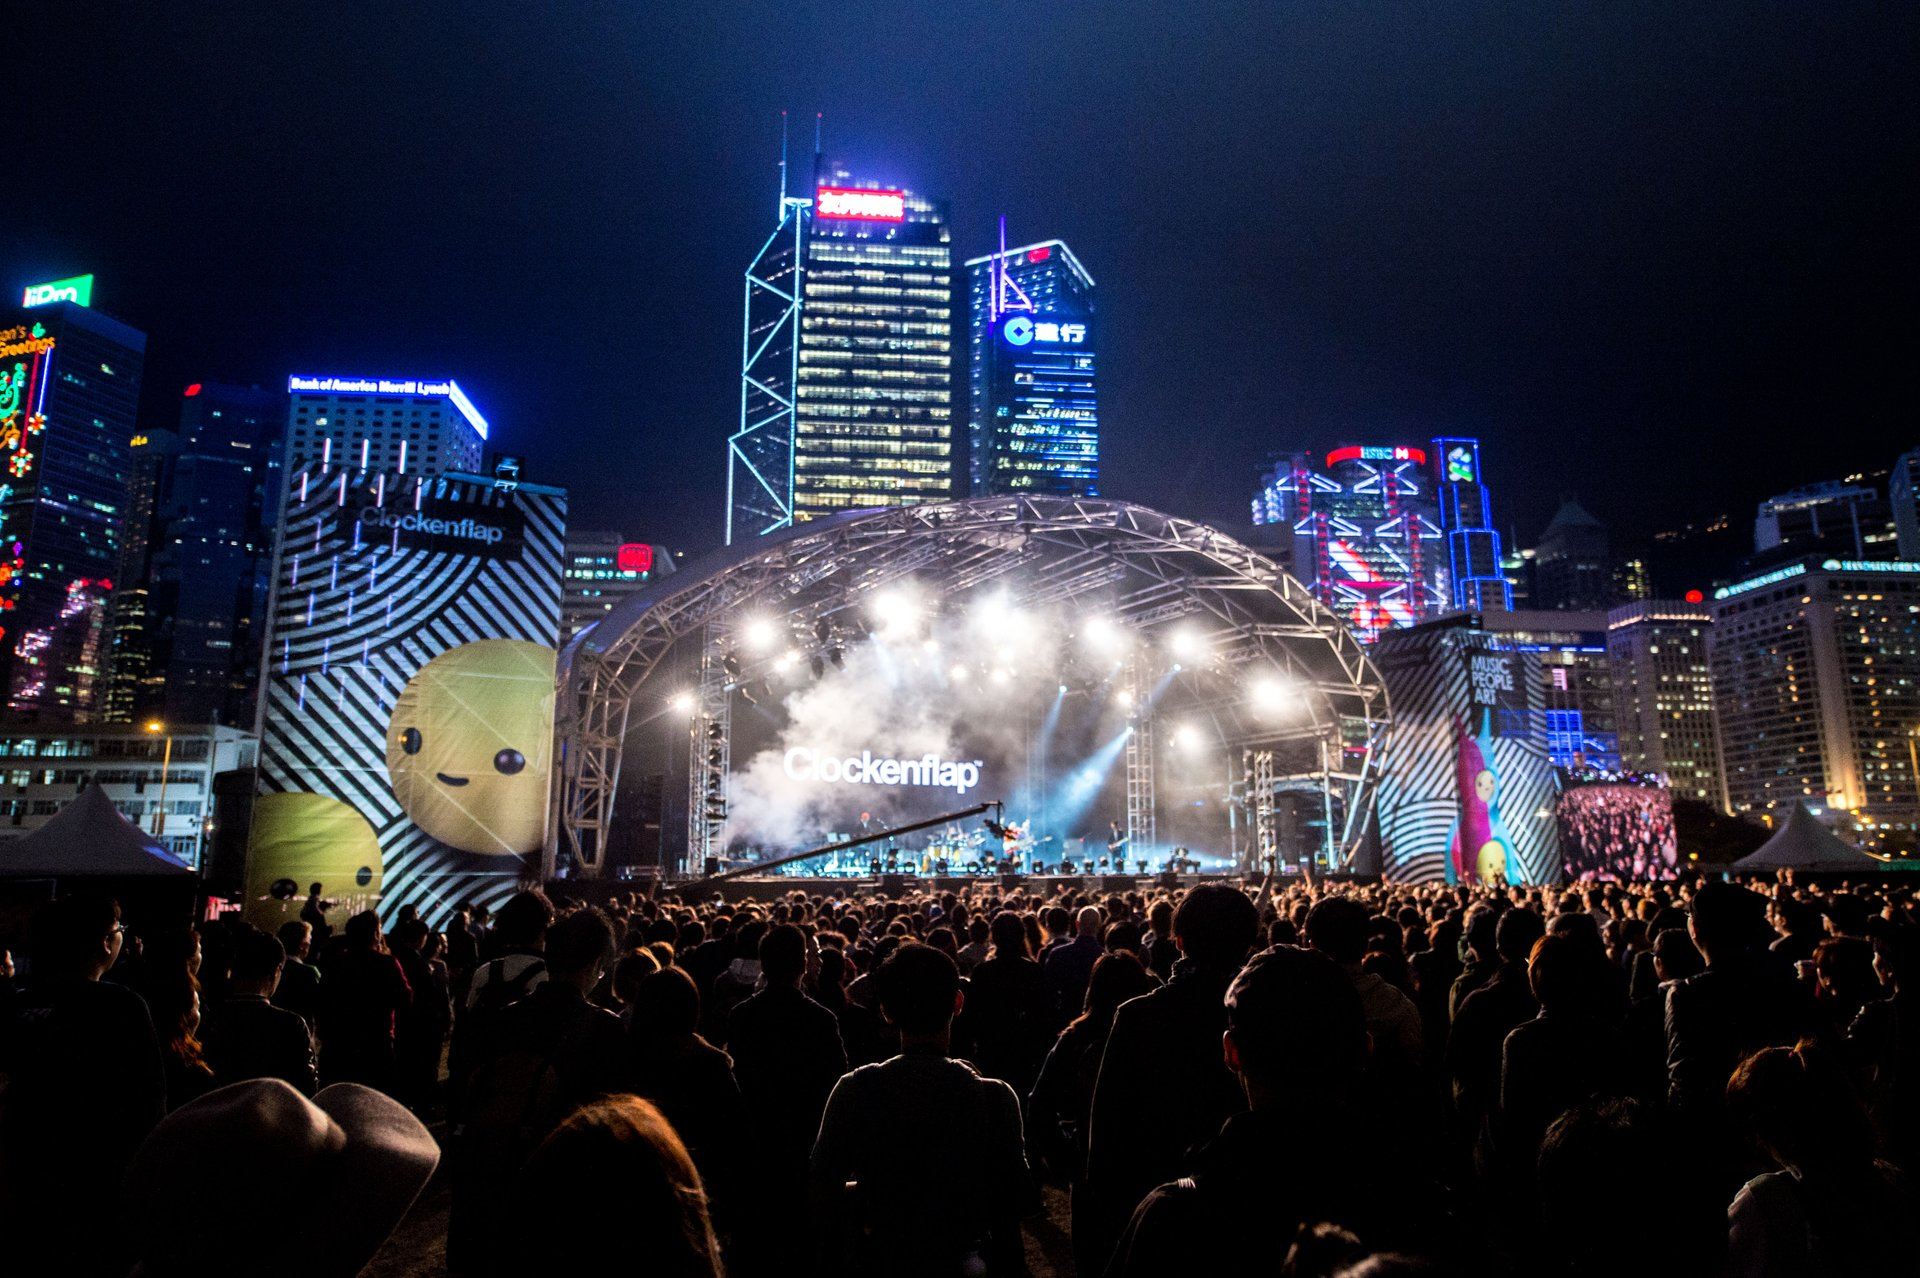 Clockenflap in Hong Kong 2020 - Best Time